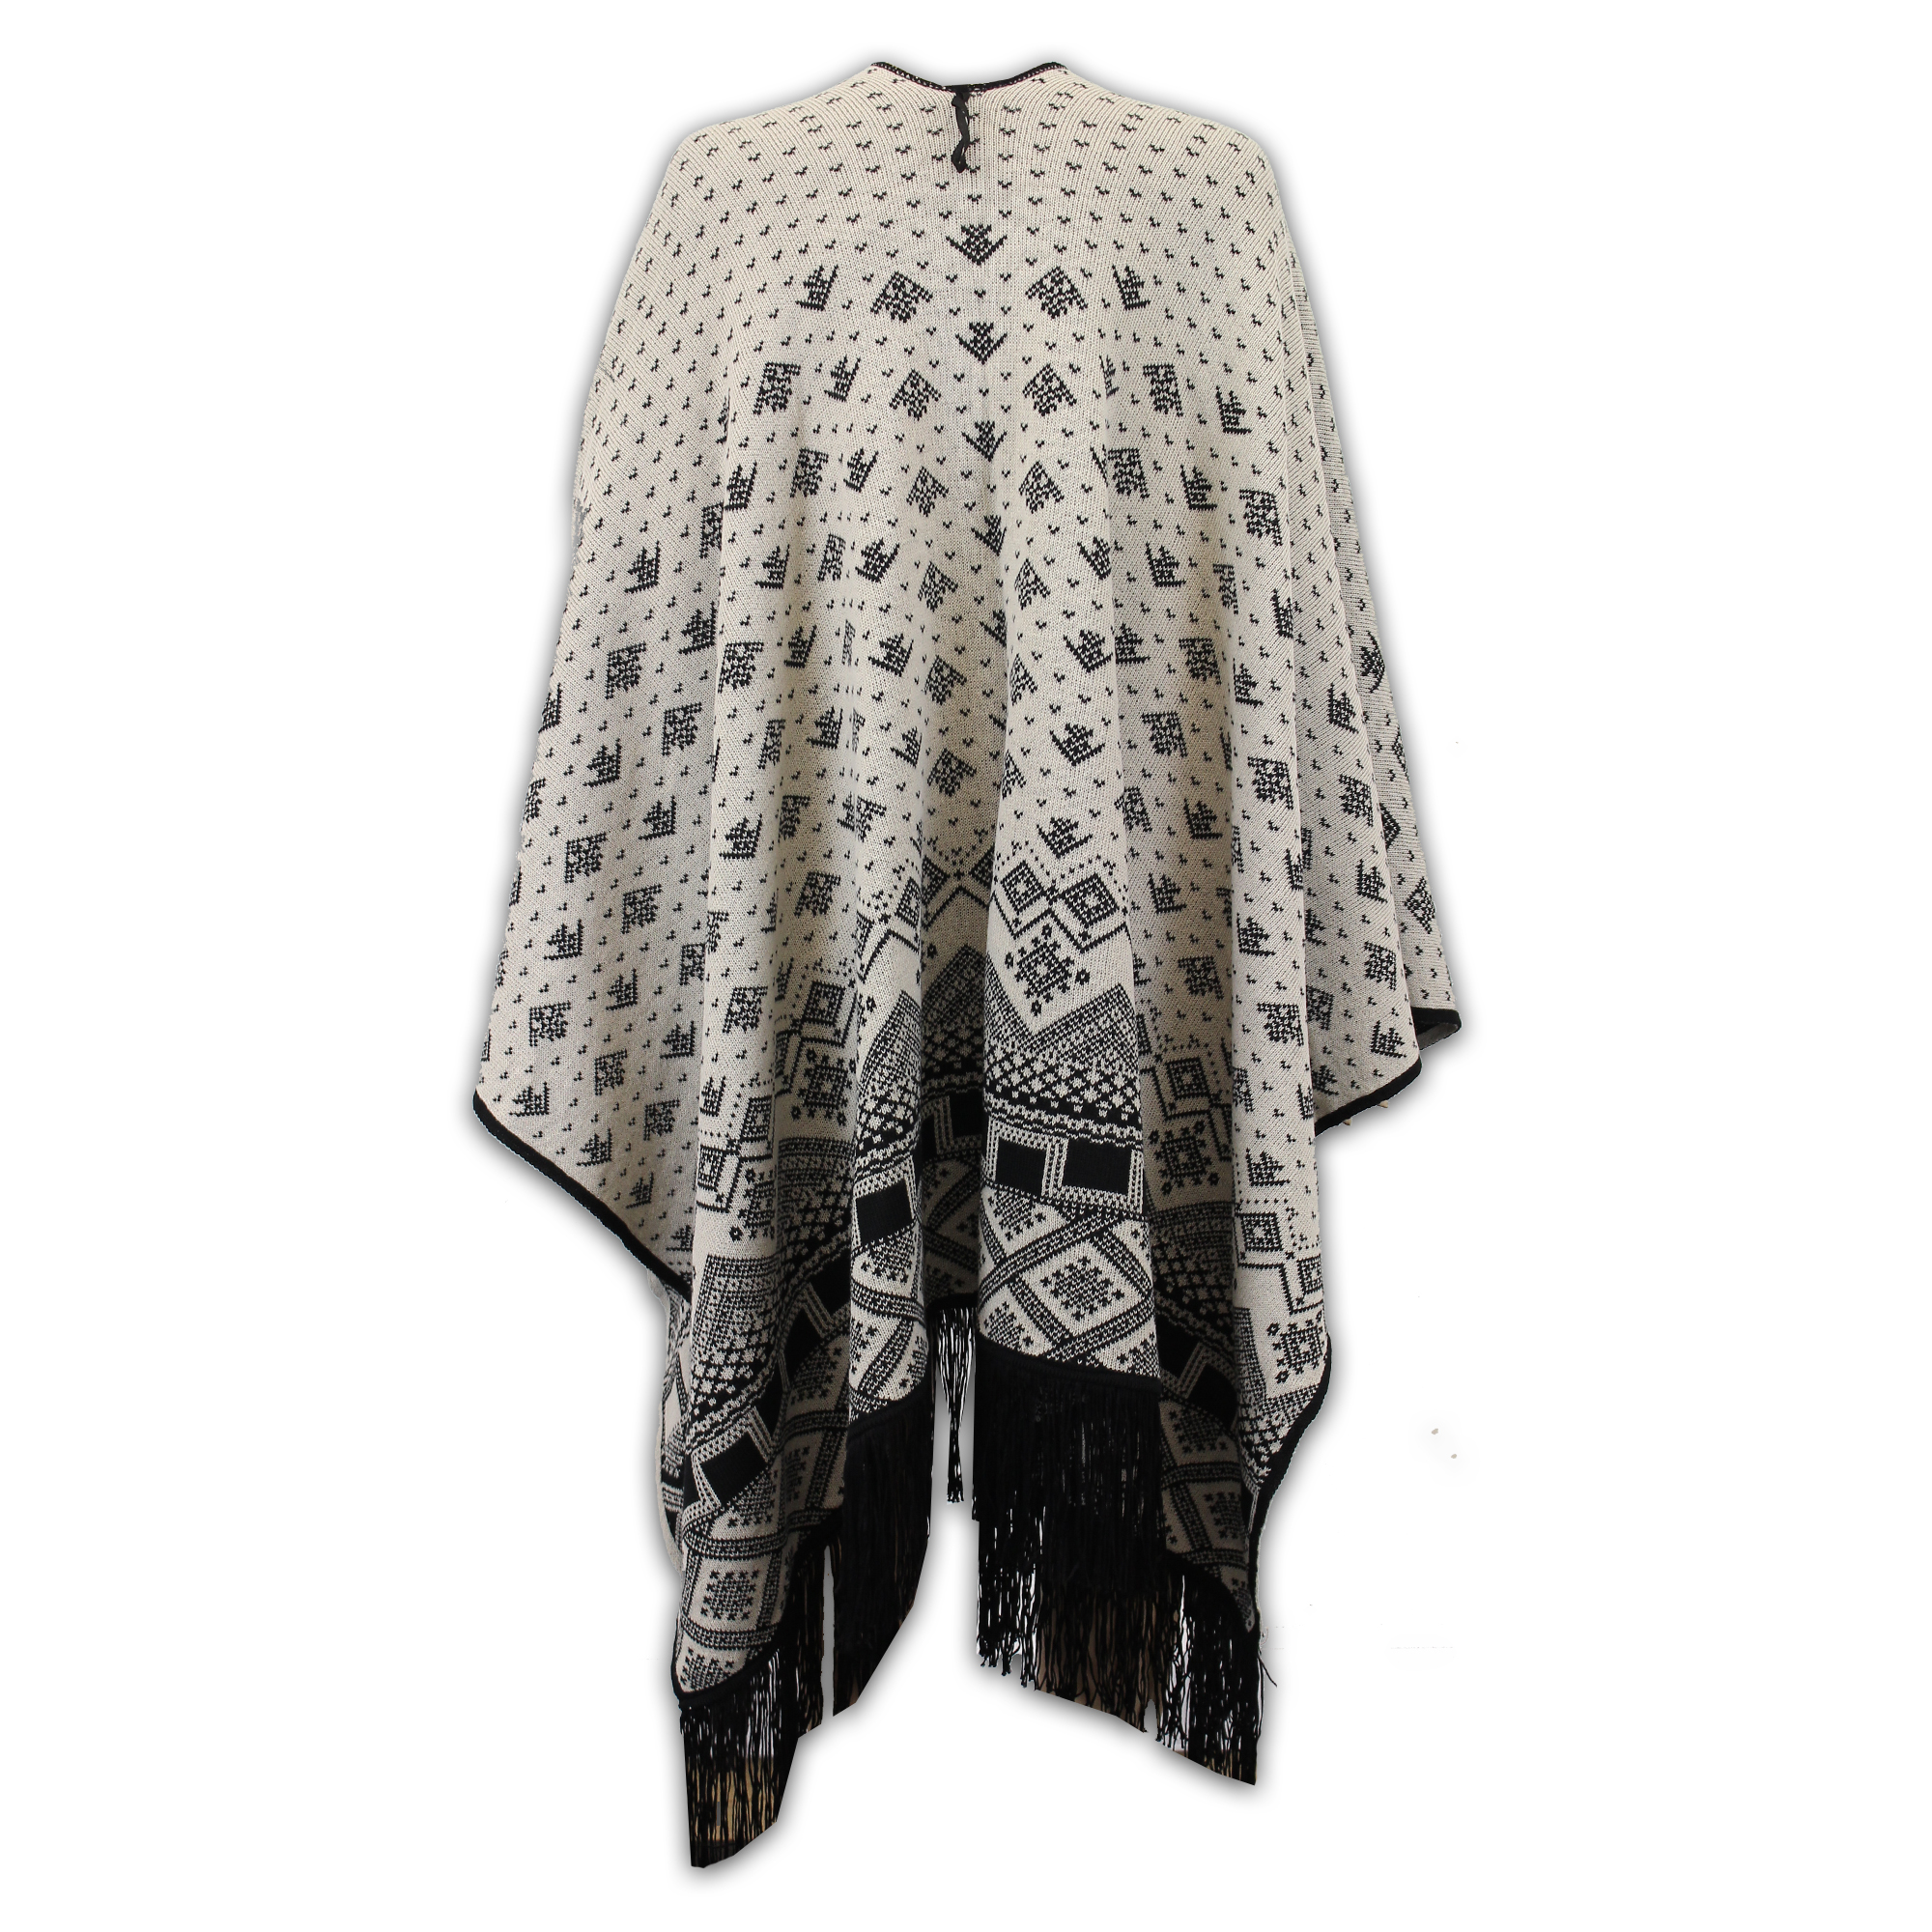 Ladies-Shawl-Womens-Knitted-Poncho-Cardigan-Reversible-Aztec-Cape-Oversized-New thumbnail 8